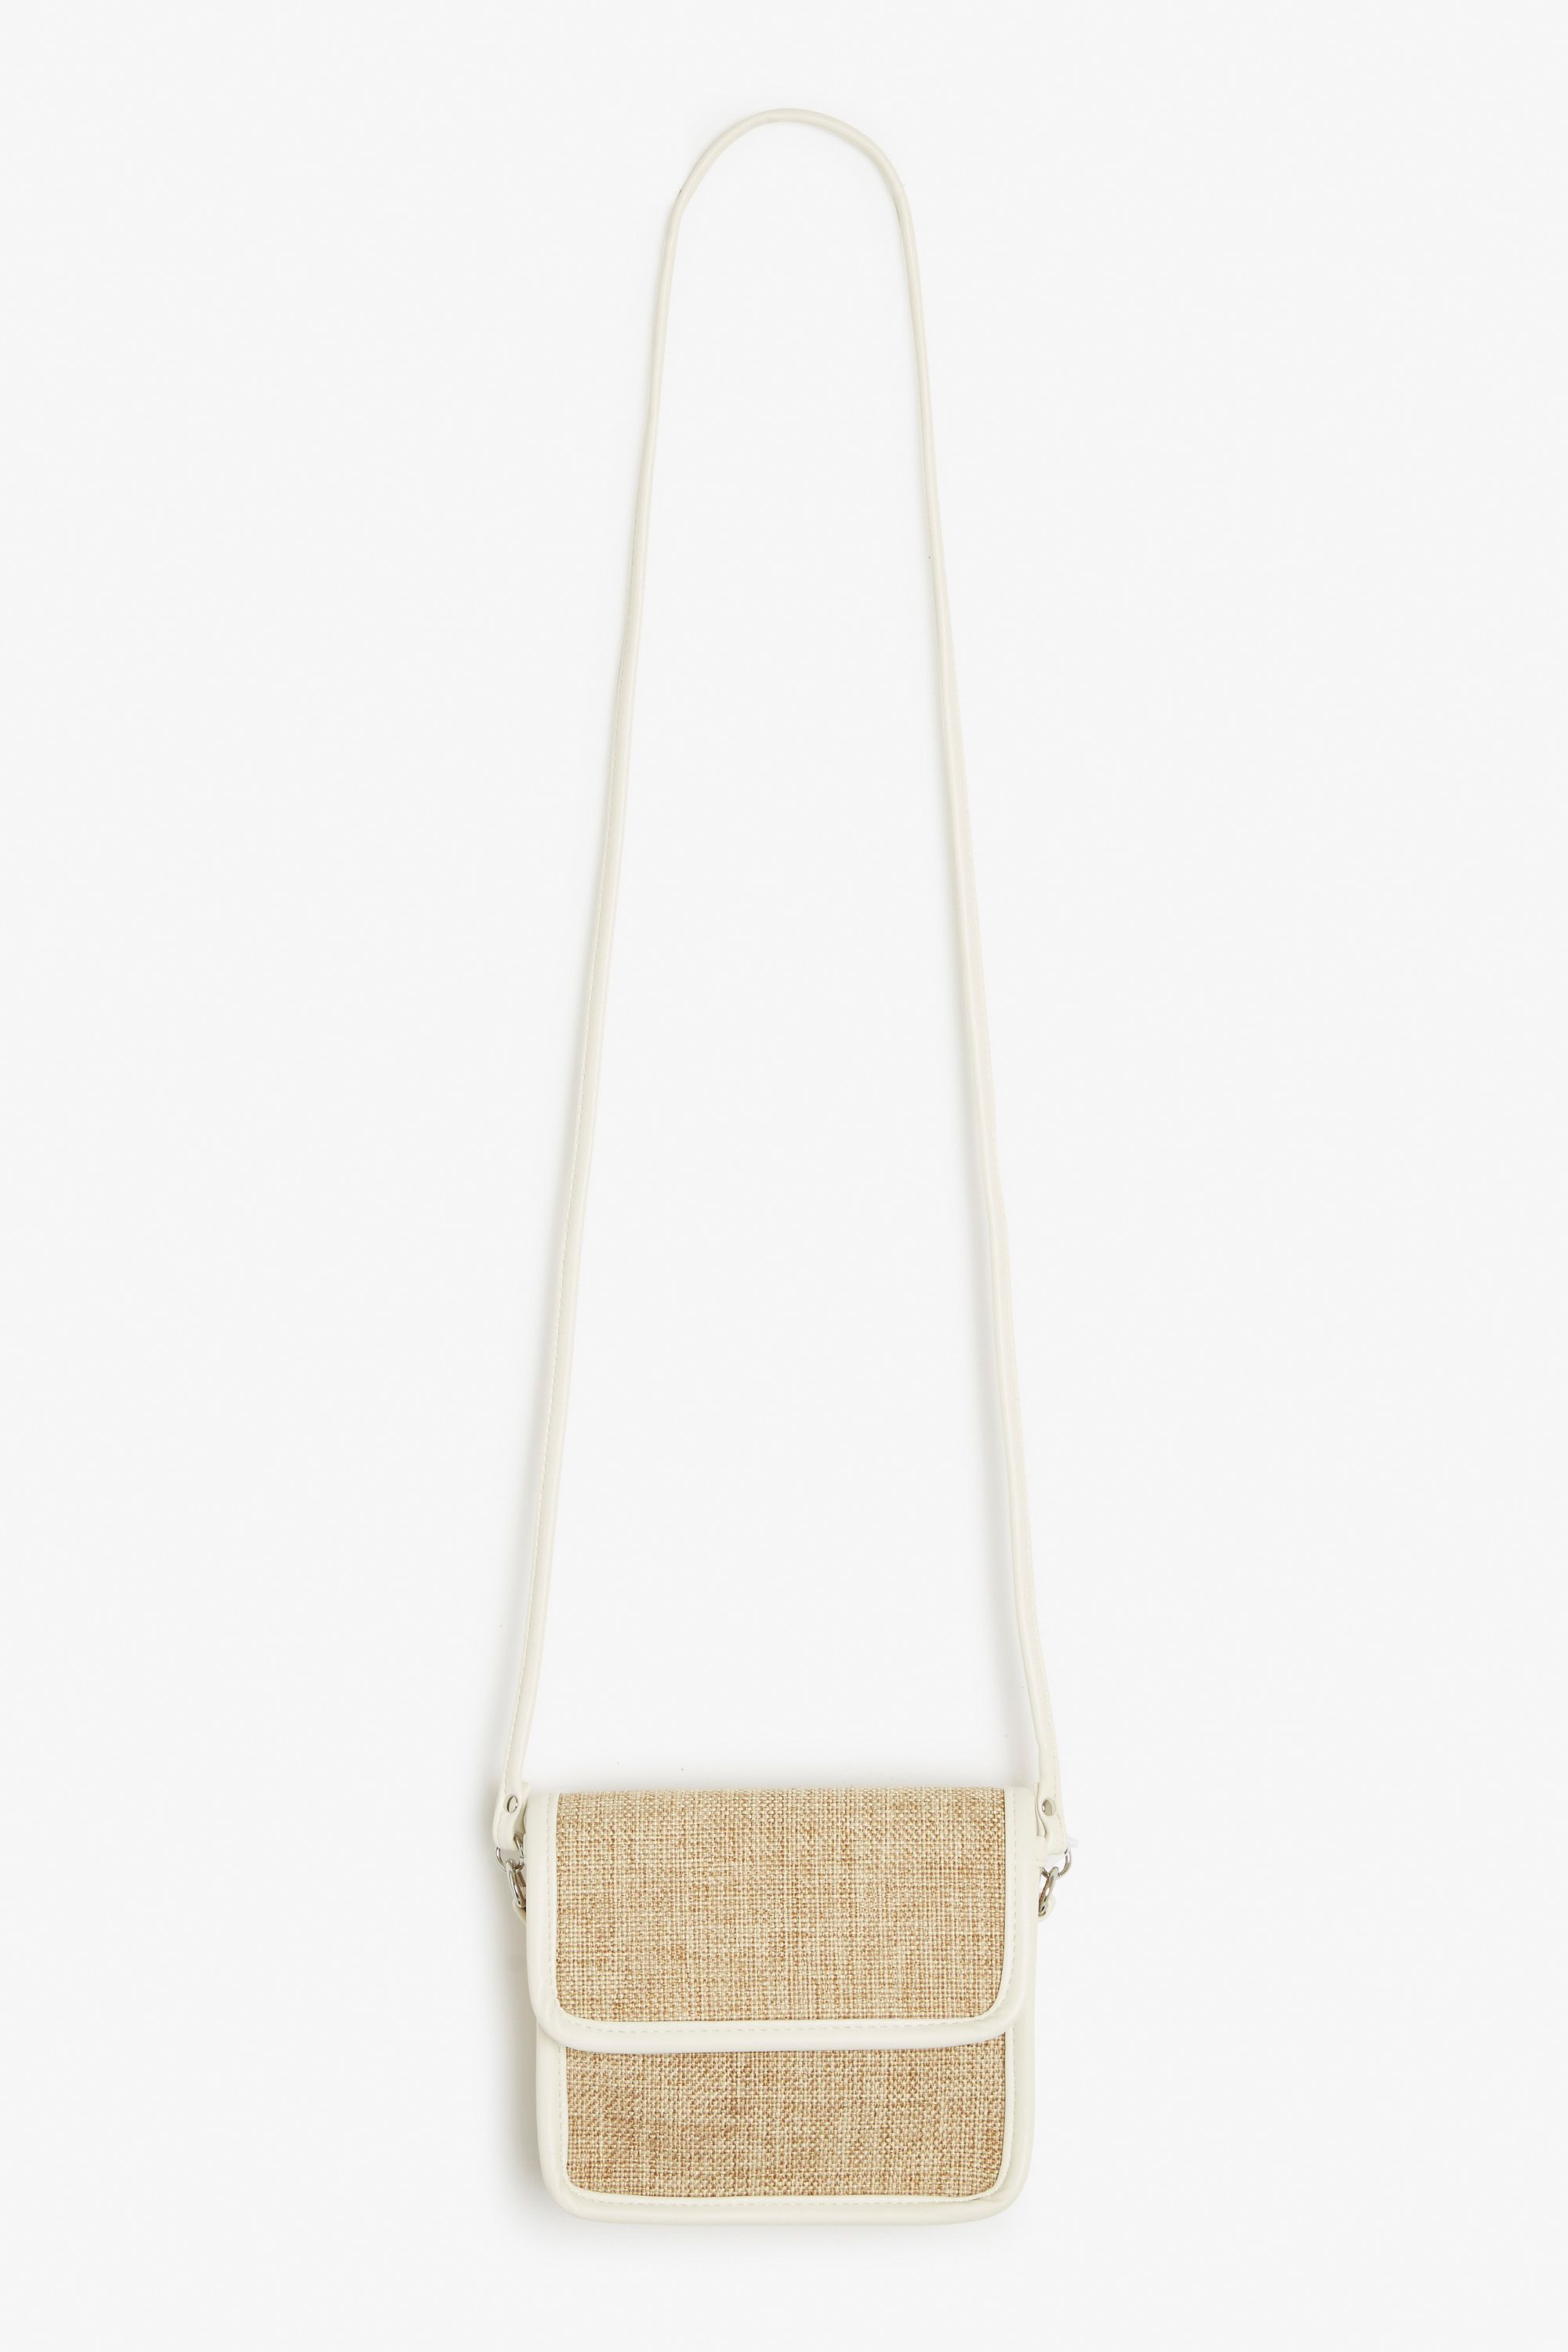 A petite sized, long strap purse that's begging to go on your beach vacay.